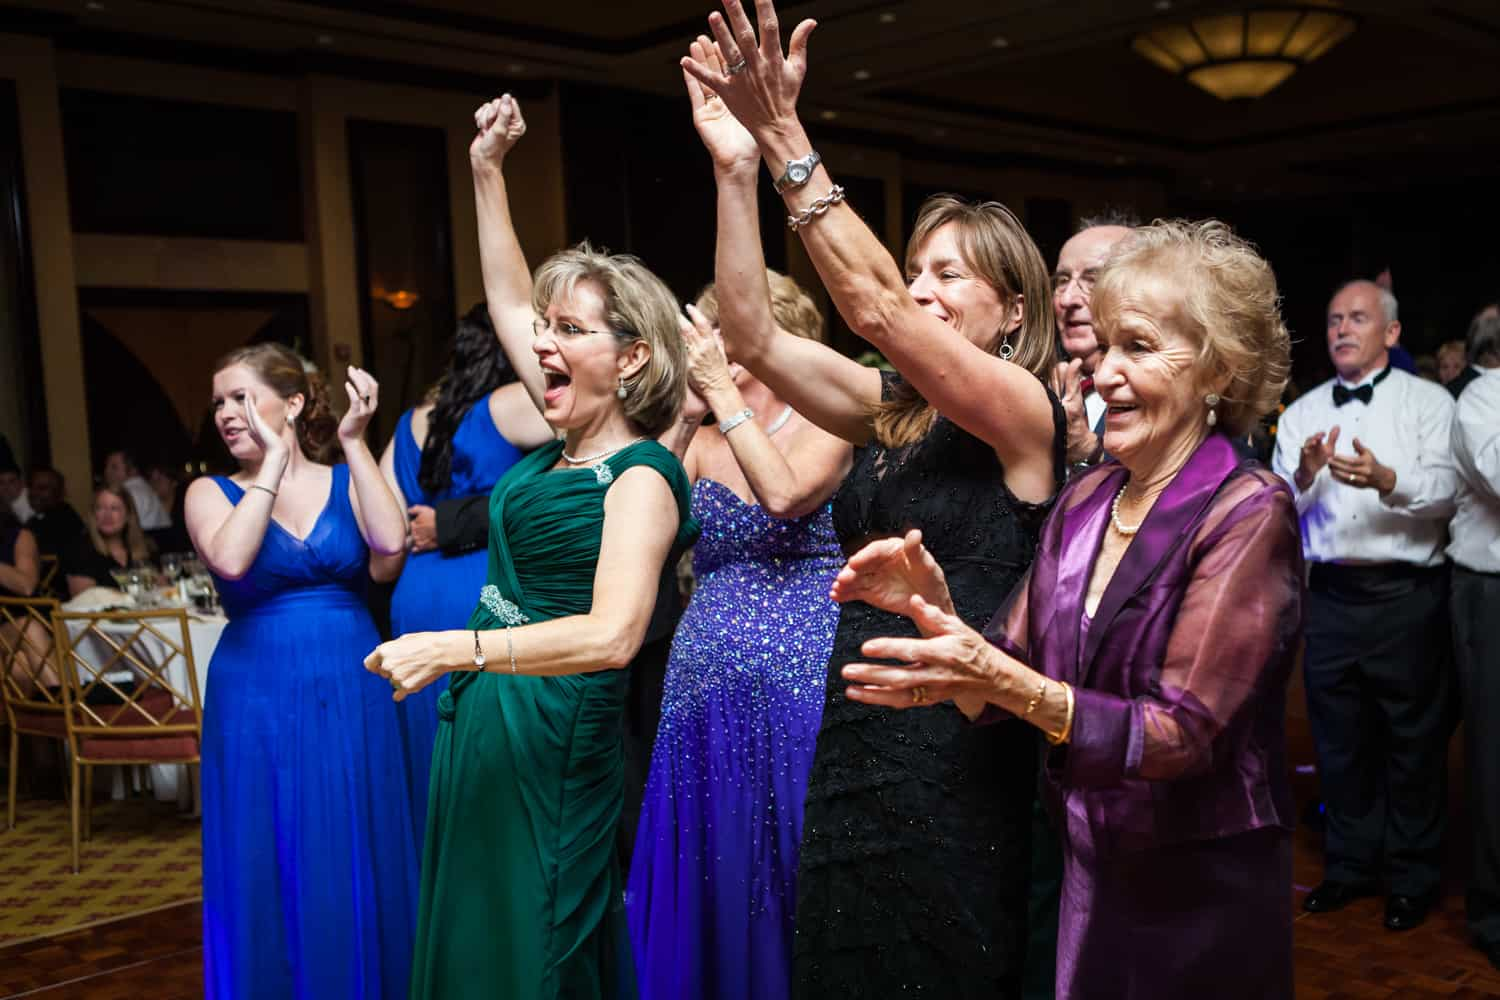 Guests cheering with arms raised at a Nicotra's Ballroom wedding